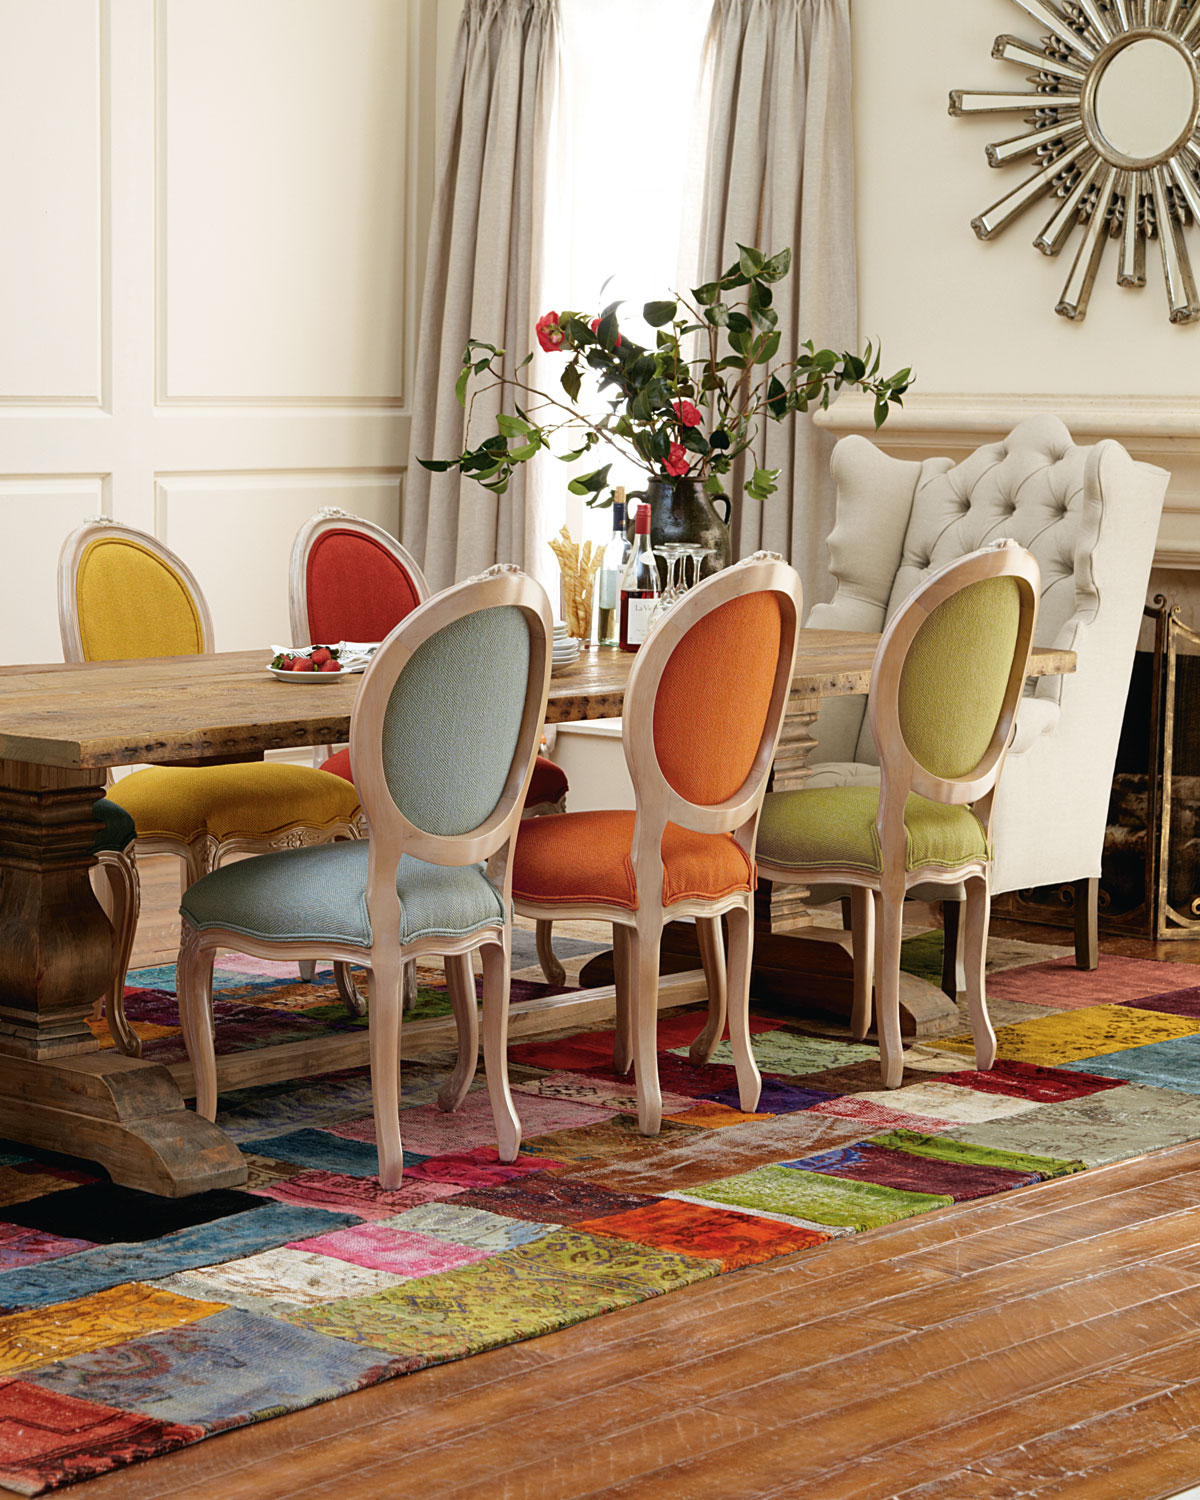 title | Dining room table with different colored chairs